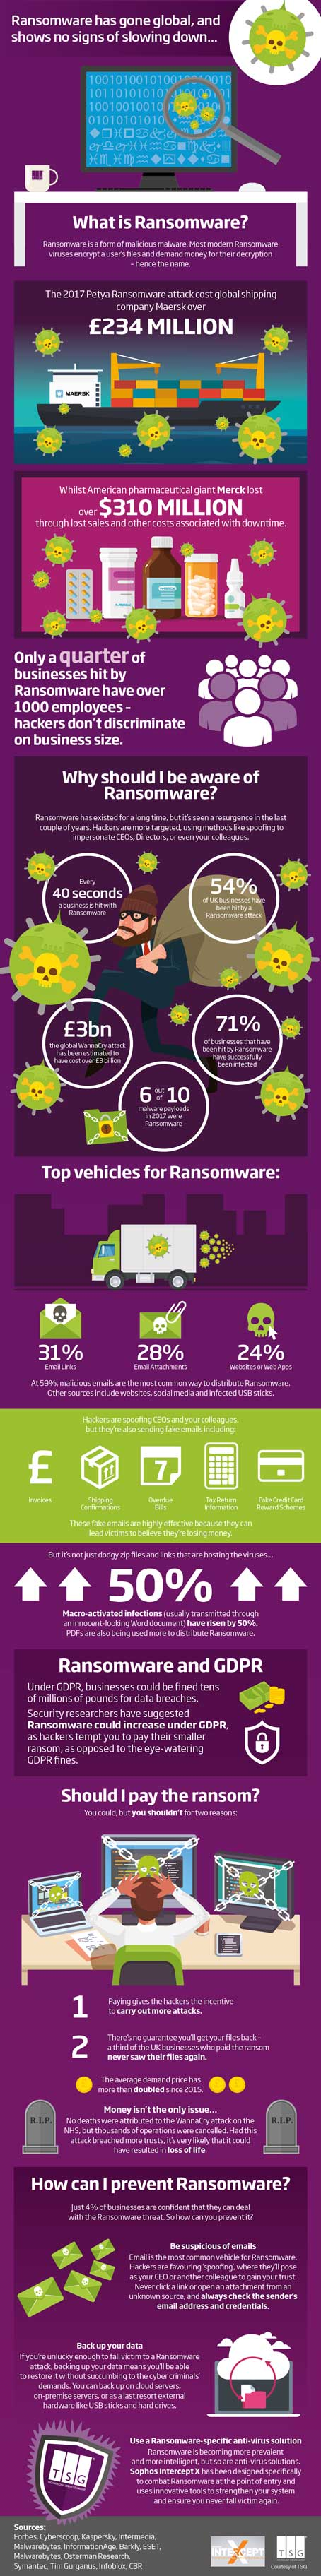 Ransomware Infographic - Technology Services Group